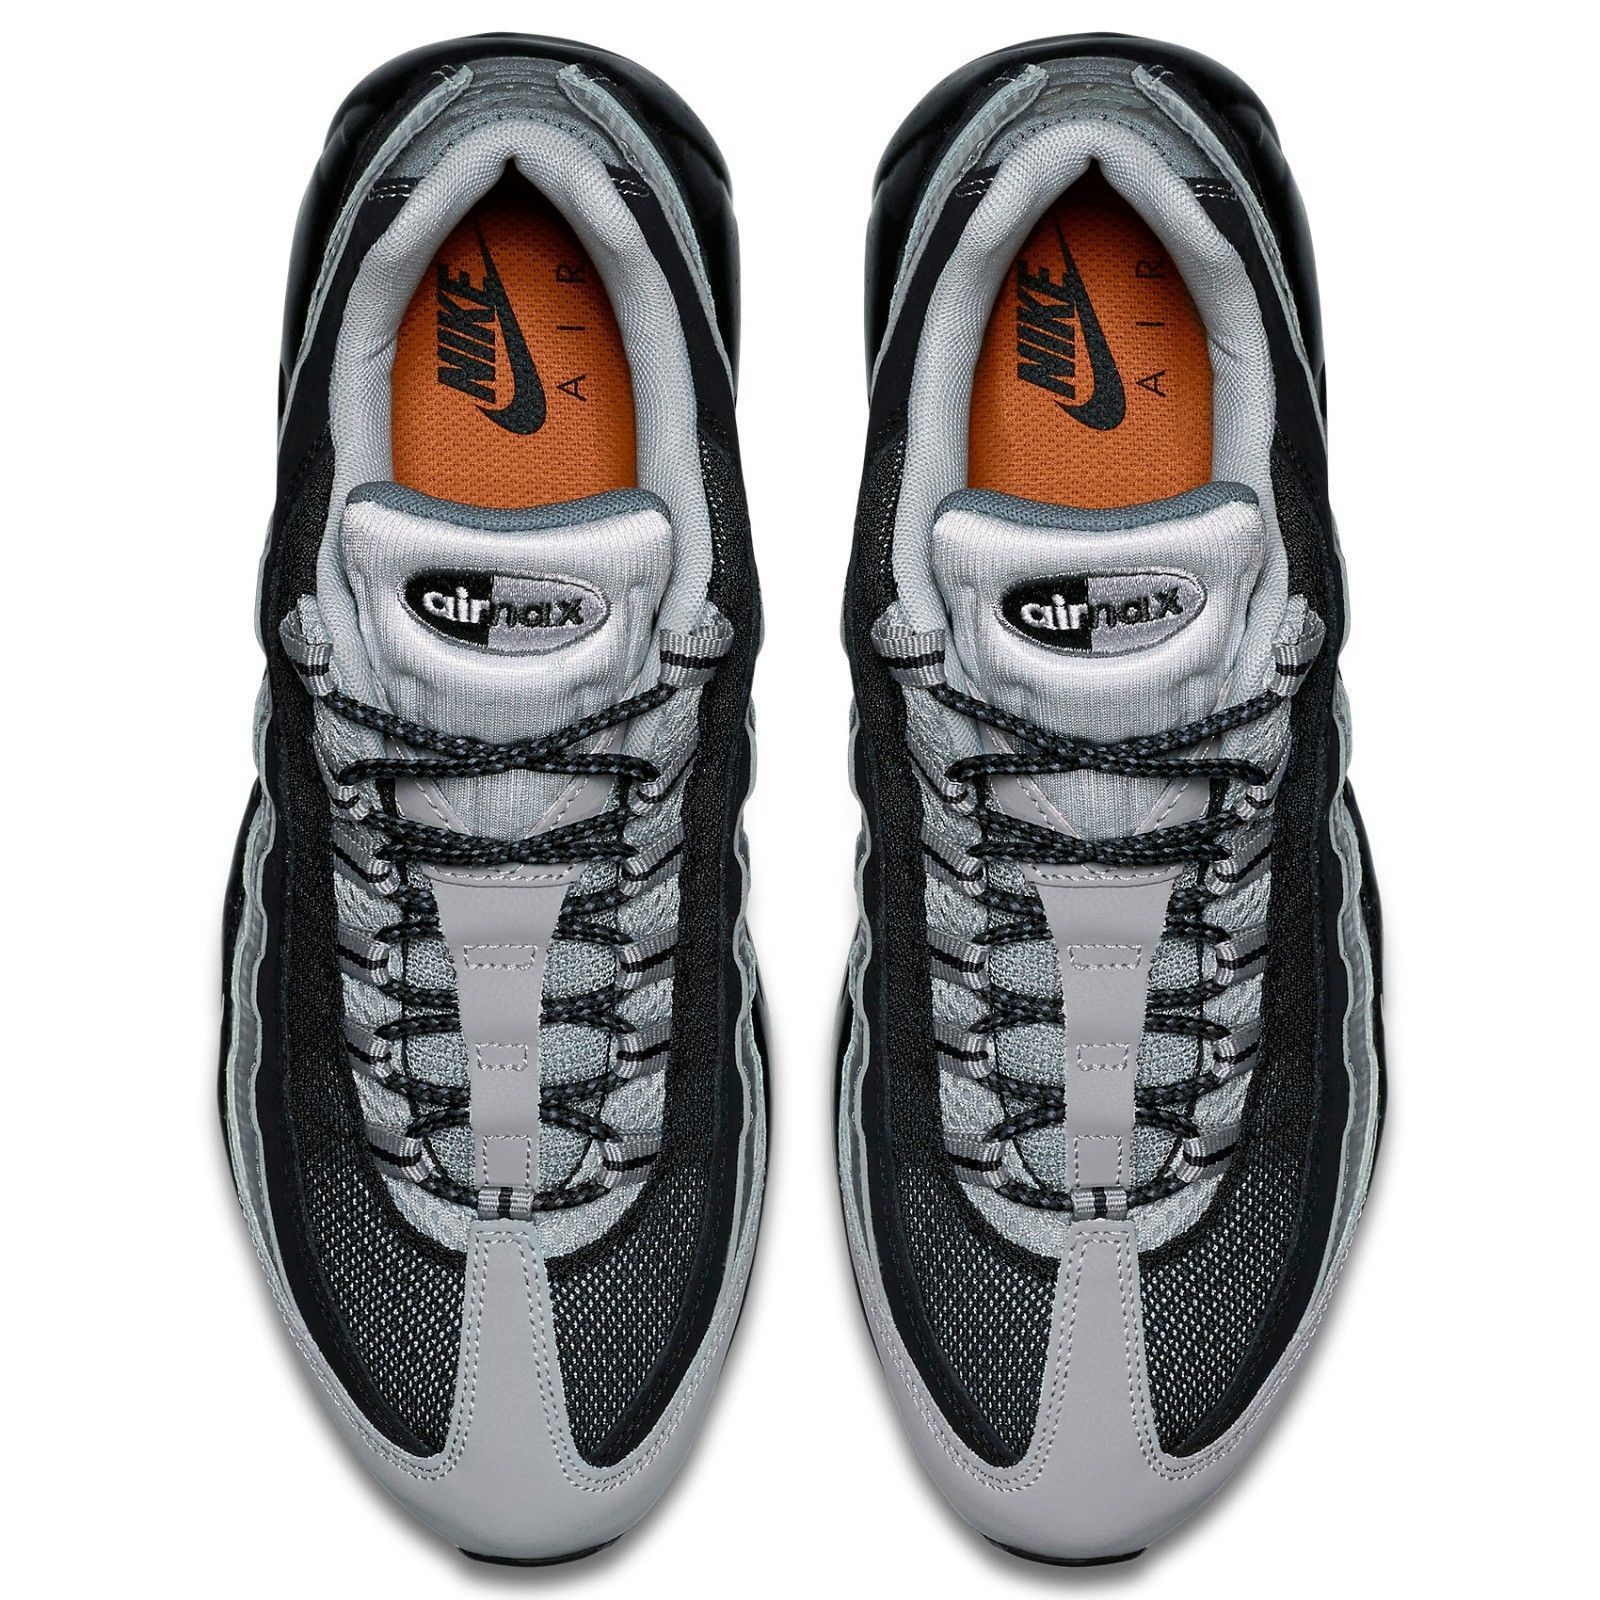 brand new 47ce5 91a08 NIKE AIR MAX 95 ESSENTIAL OG BLACK WOLF GREY SIZE 10.5 BRAND NEW (749766